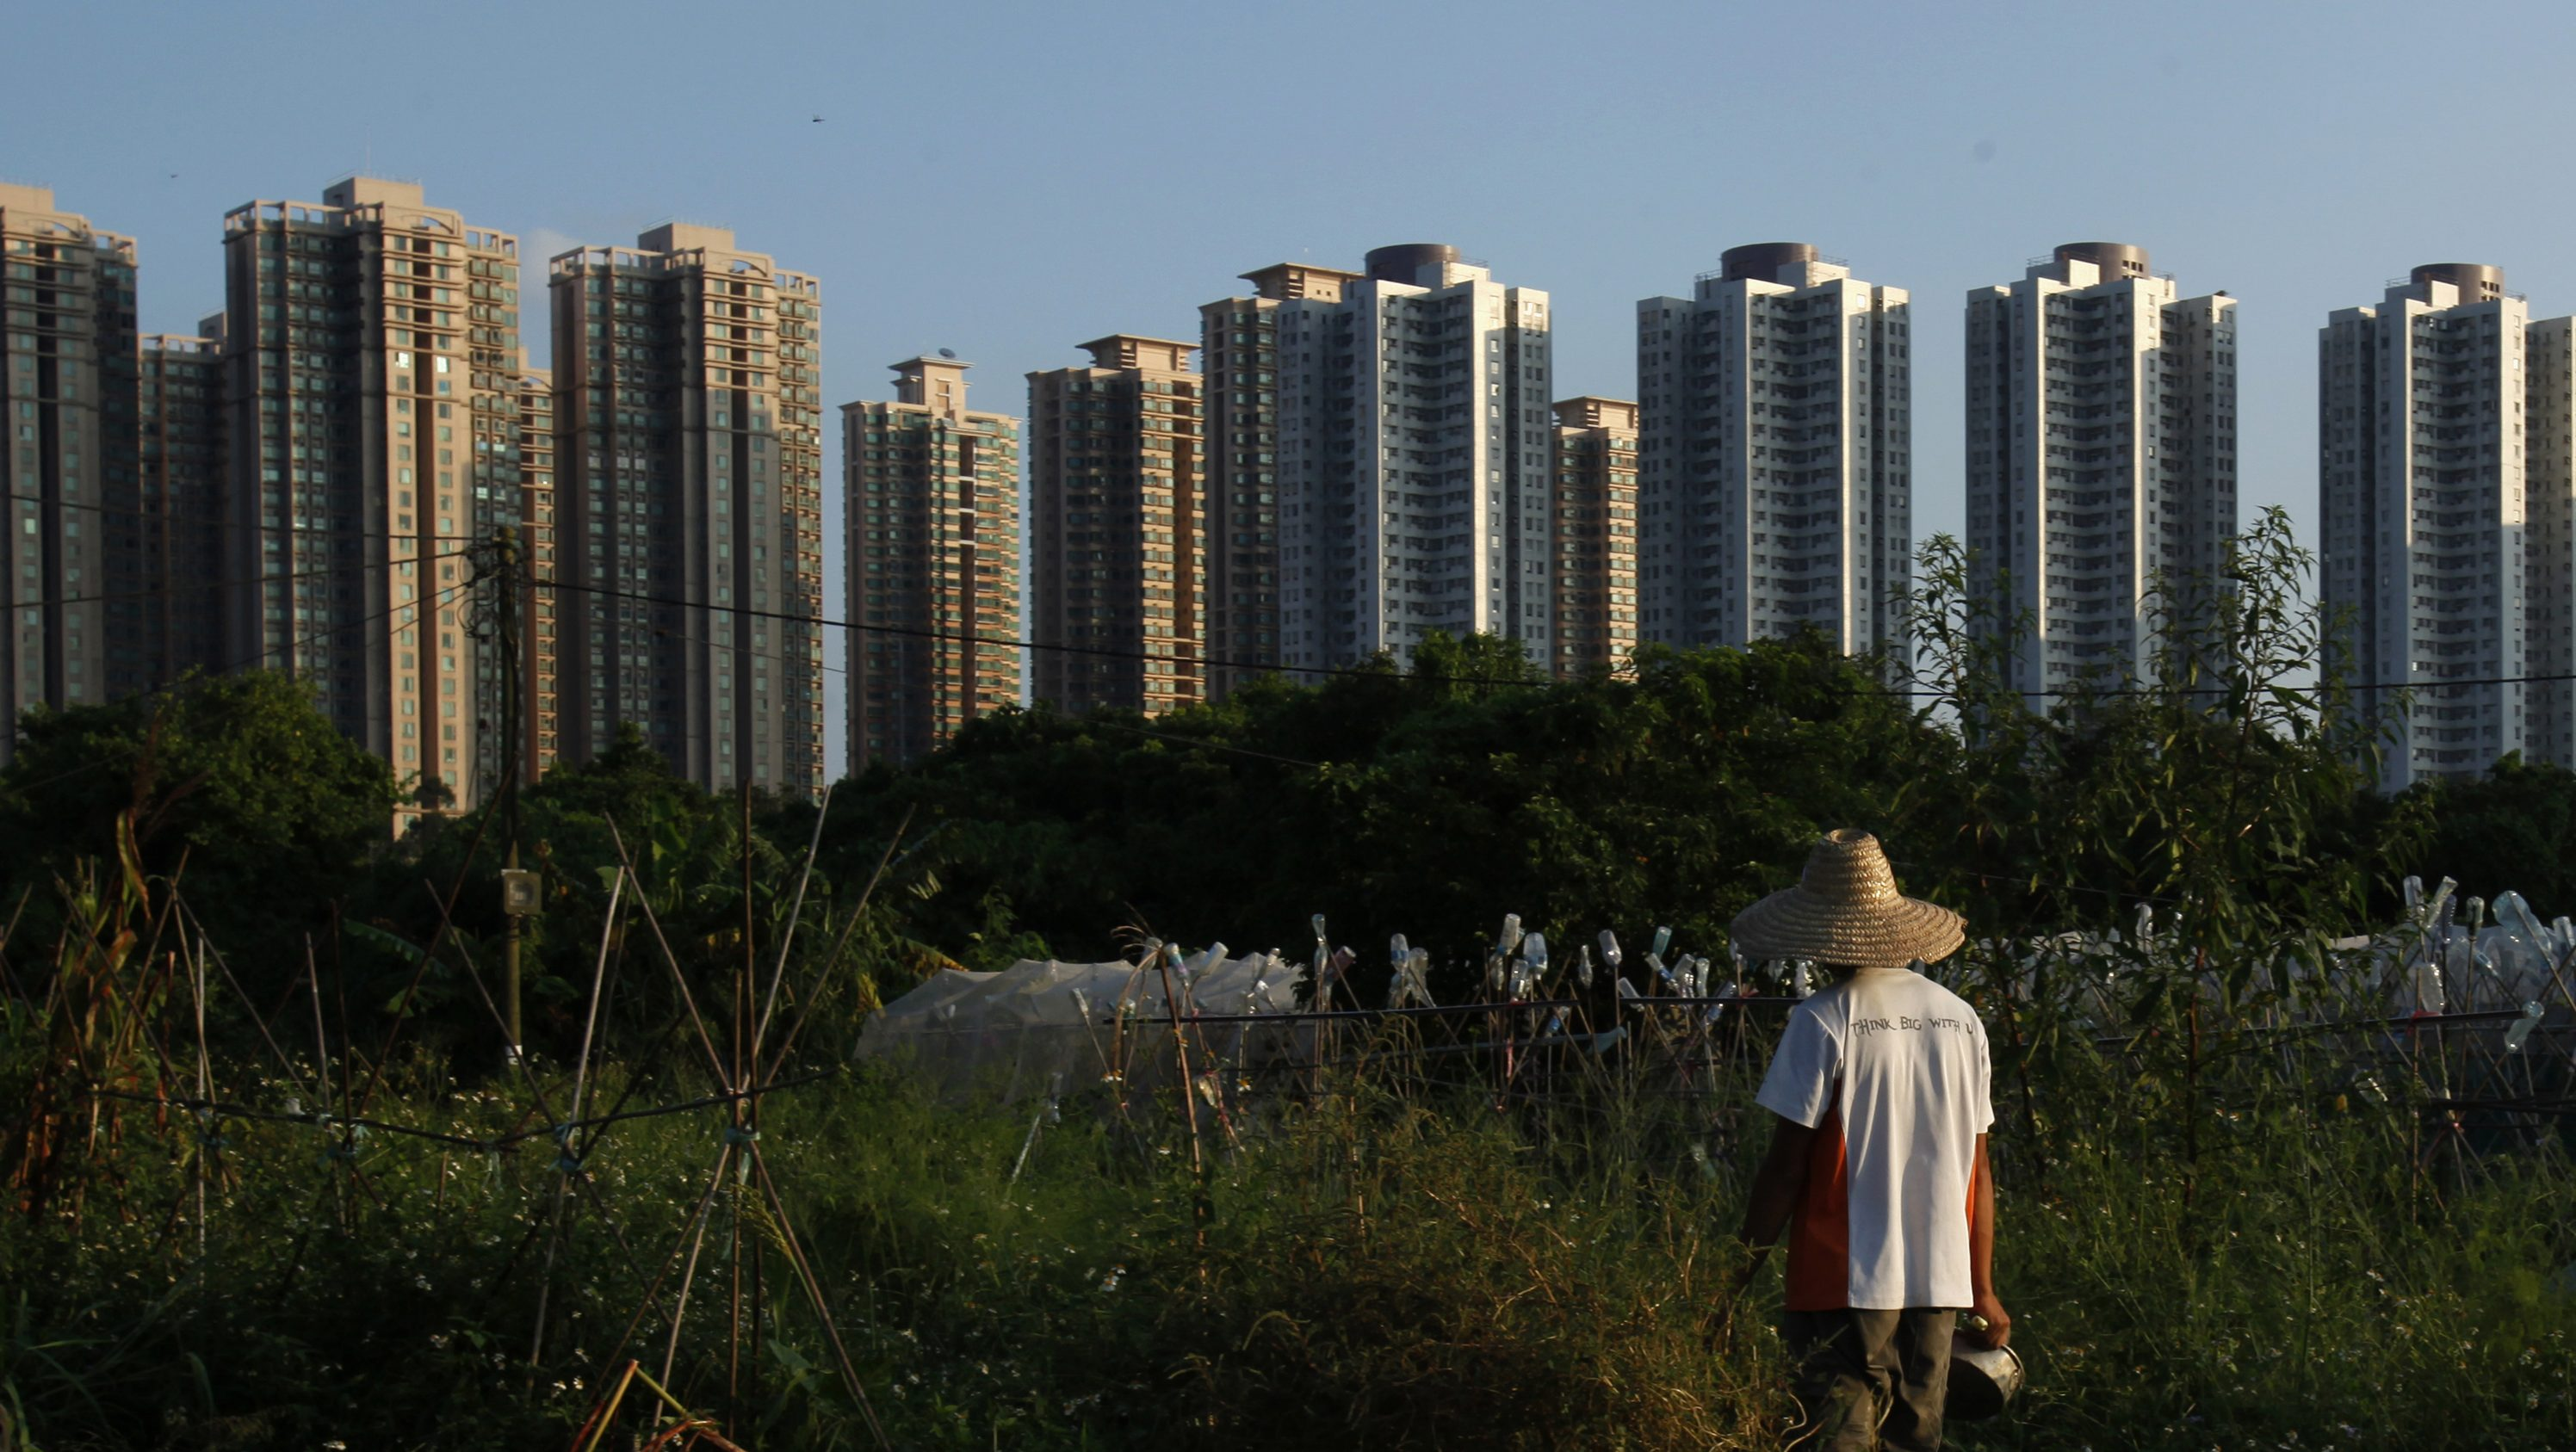 Chan Gar-sun, 26, stands at his farm in front of high-rise residential buildings at Hong Kong New Territories September 25, 2013. Only 18 square kilometres of land in the financial hub are actively farmed, which accounted for 2 per cent of local consumption, according to government figures. Picture taken September 25, 2013.    REUTERS/Bobby Yip  (CHINA - Tags: SOCIETY CITYSCAPE AGRICULTURE) - RTX16SQ4